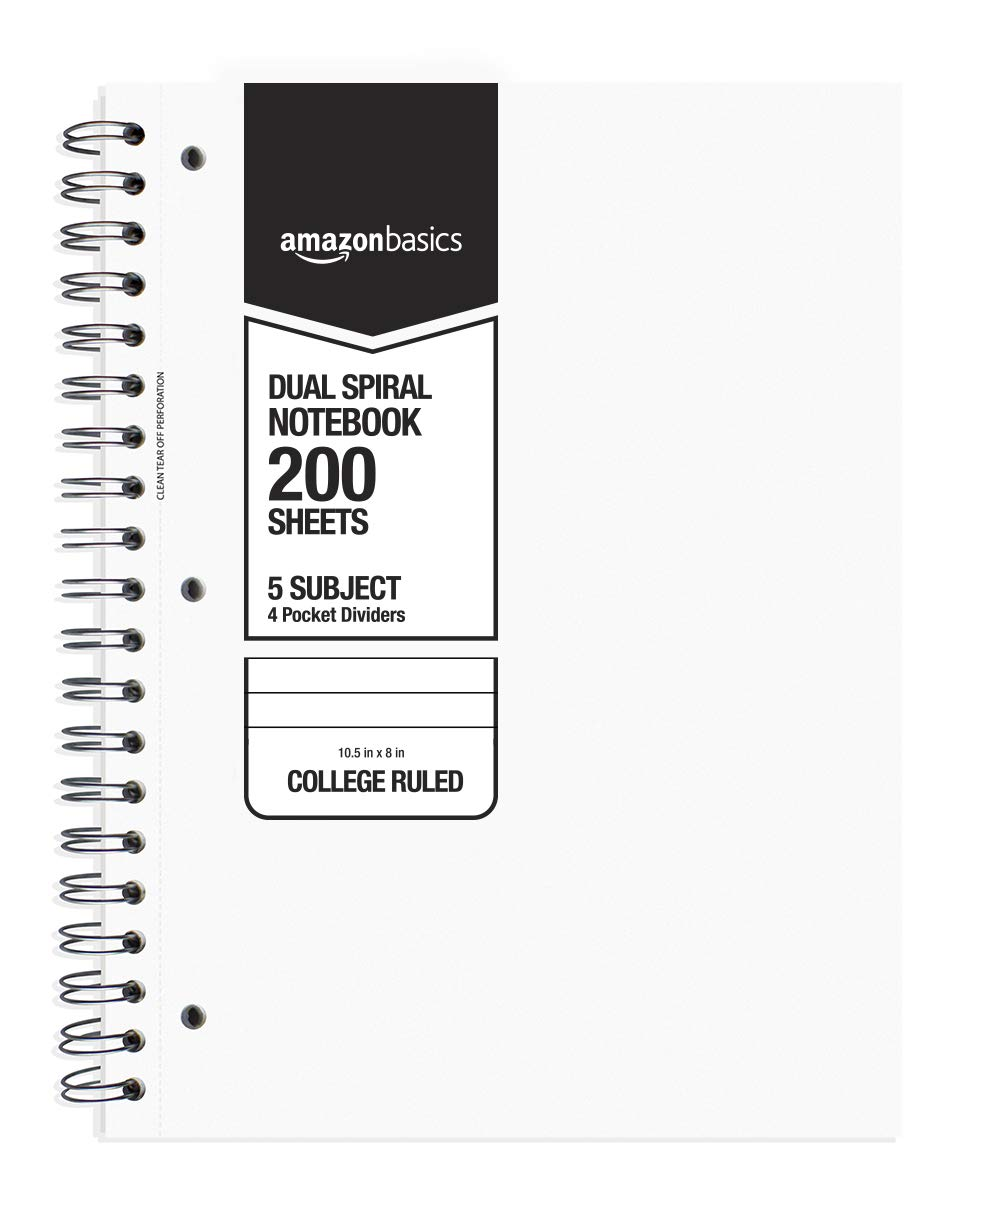 AmazonBasics College Ruled Wirebound 5-Subject 200-Sheet Notebook with Pocket Divider - Pack of 2, 10.5 x 8 Inch, Black and White